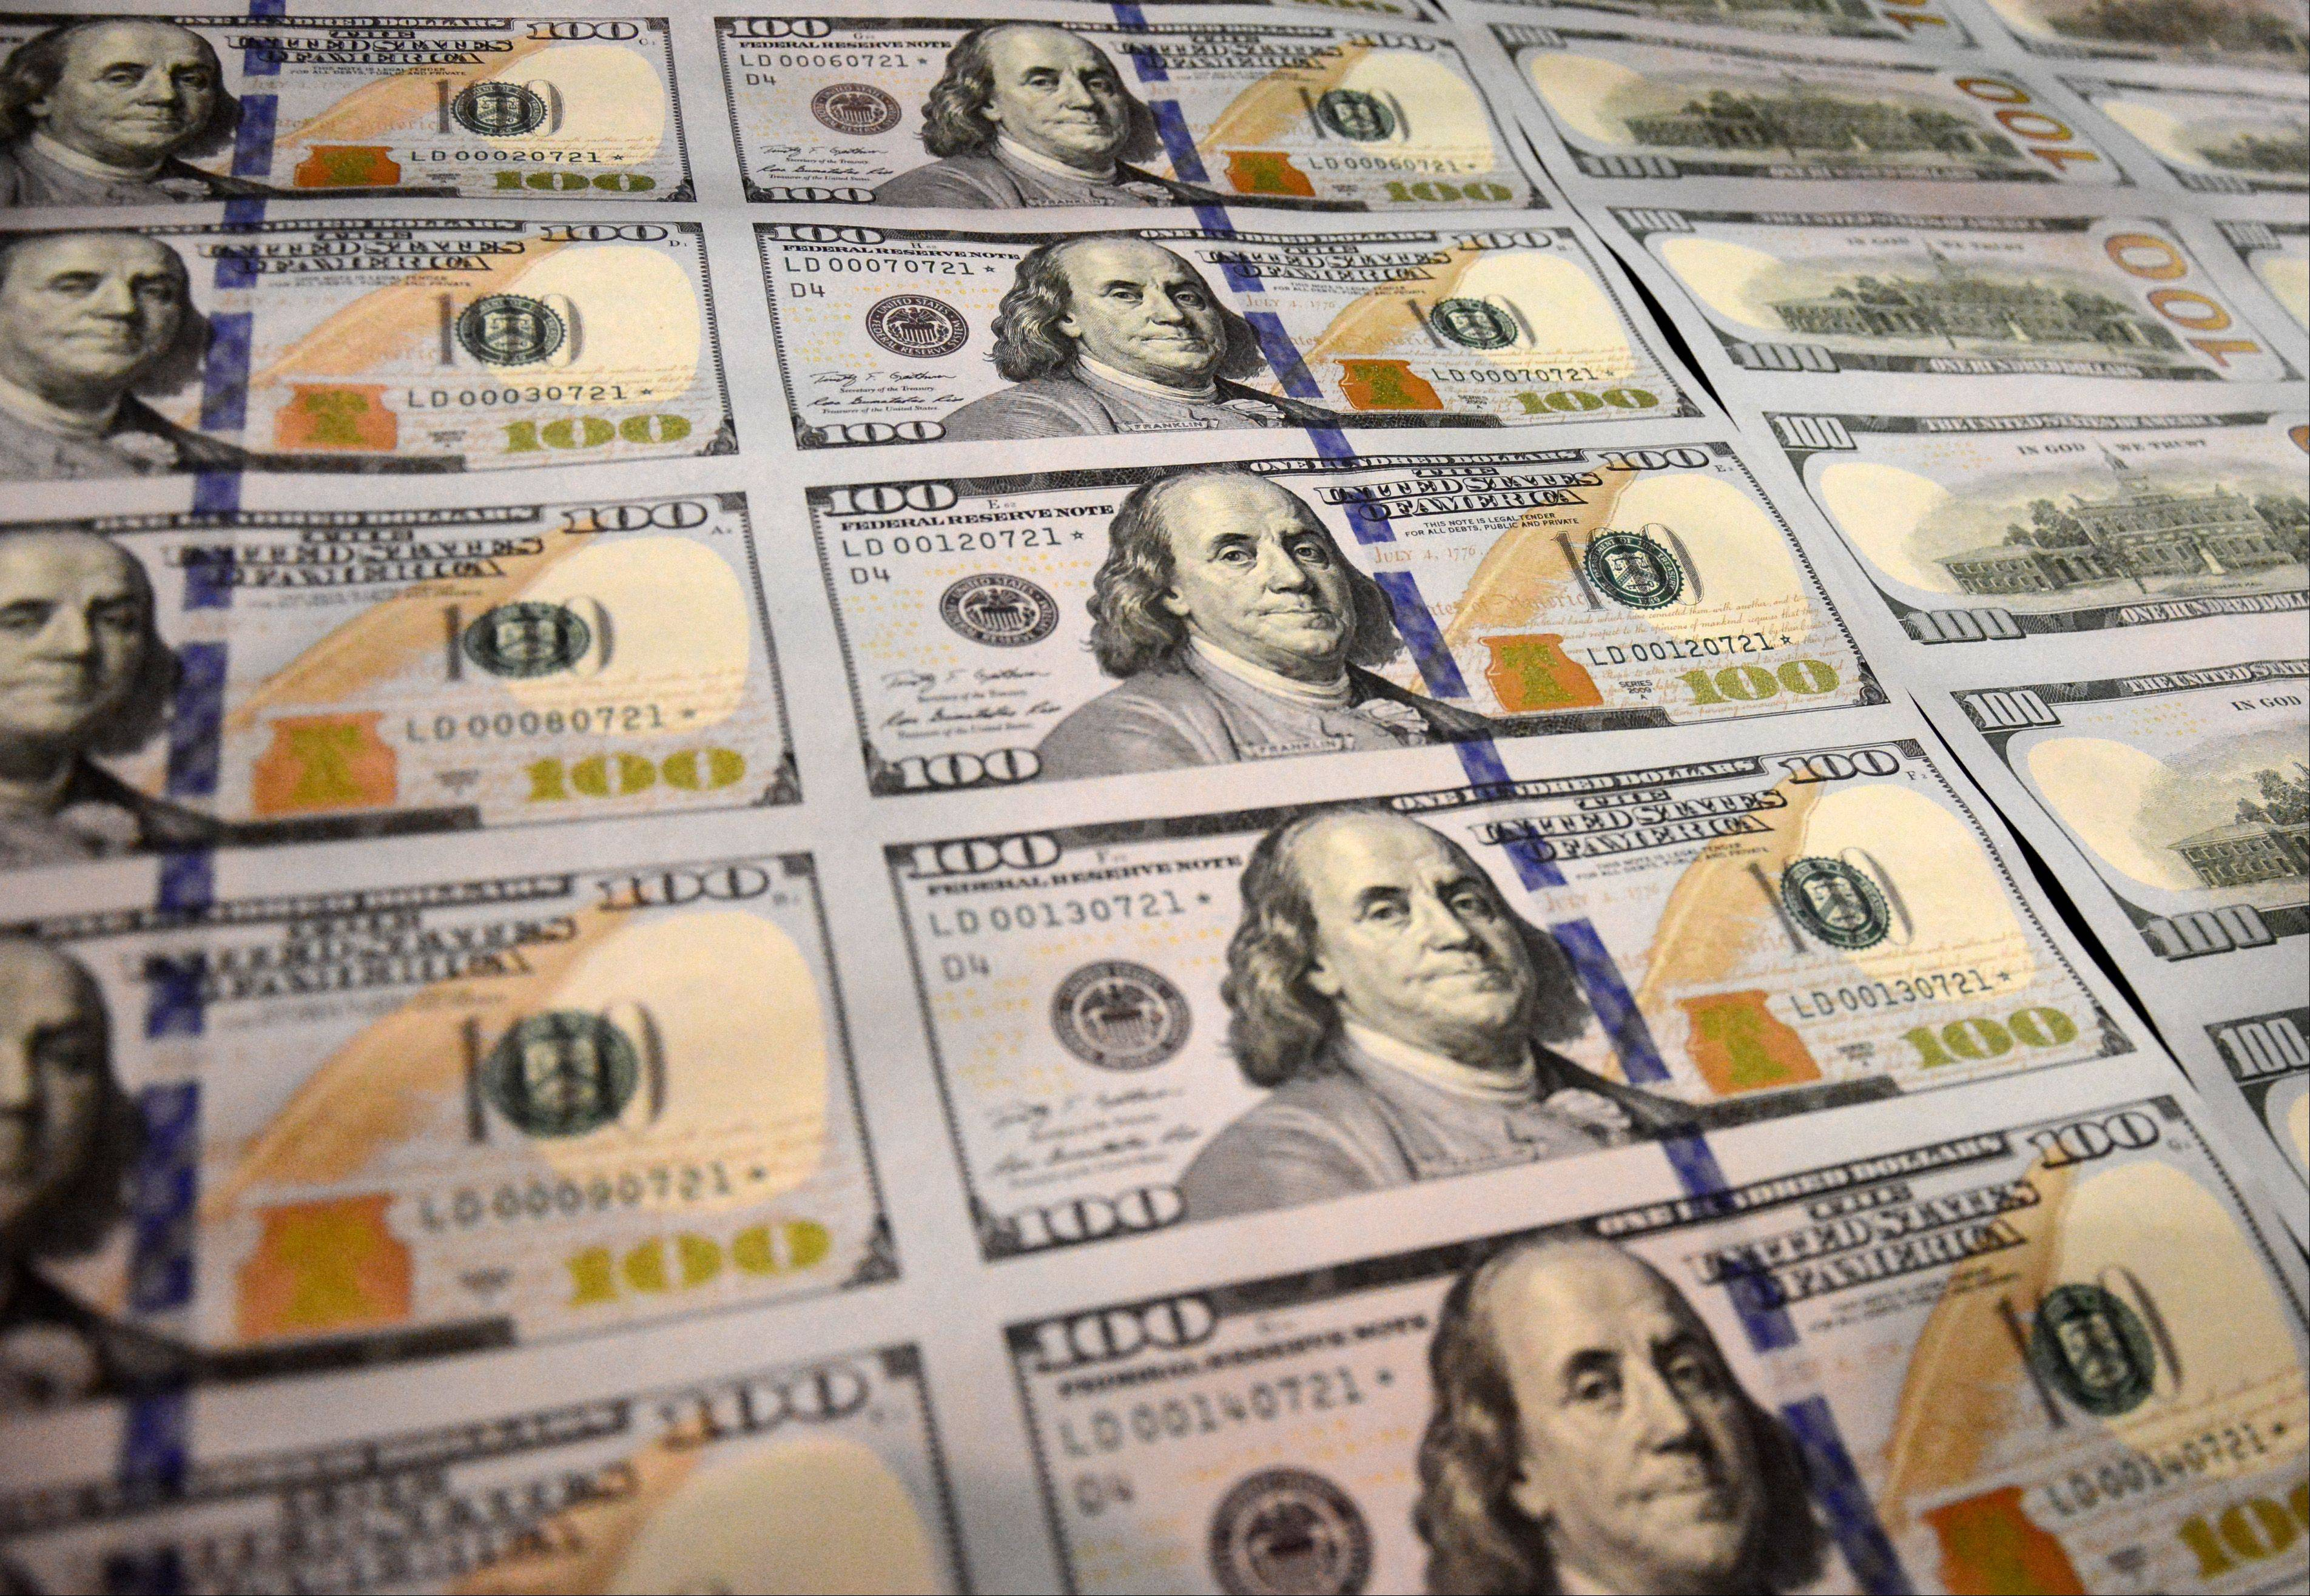 The new $100 bill will have its first public showing during the Chicago World�s Fair of Money August 13-17 at the Donald E. Stephens Convention Center in Rosemont.